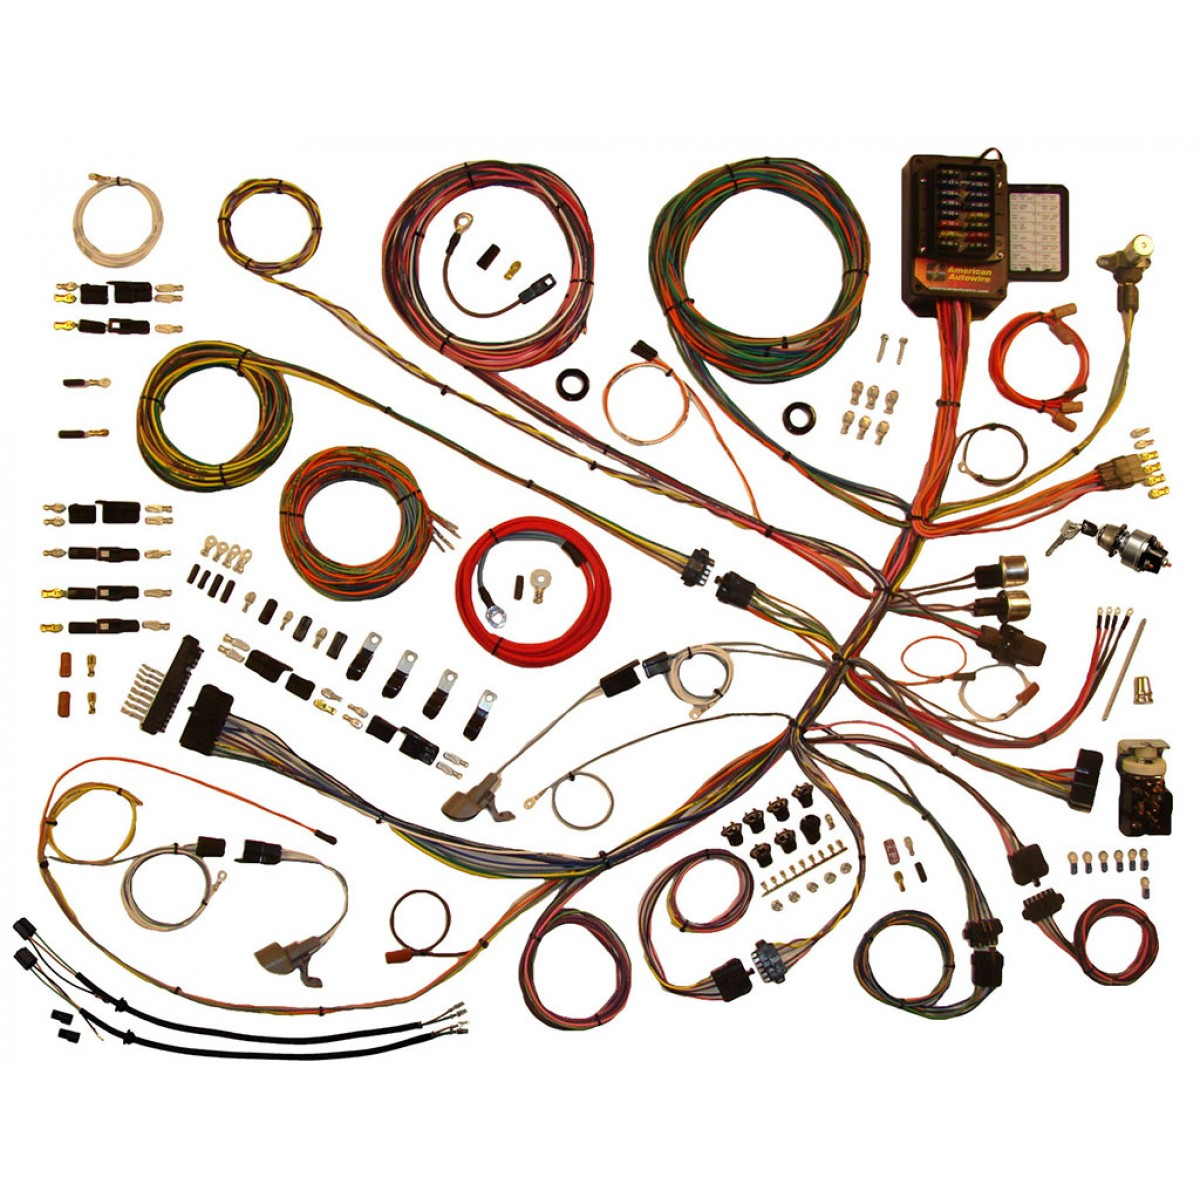 Ford Truck Wiring Library 1960 Ranchero Harness Complete Kit 1953 1956 F100